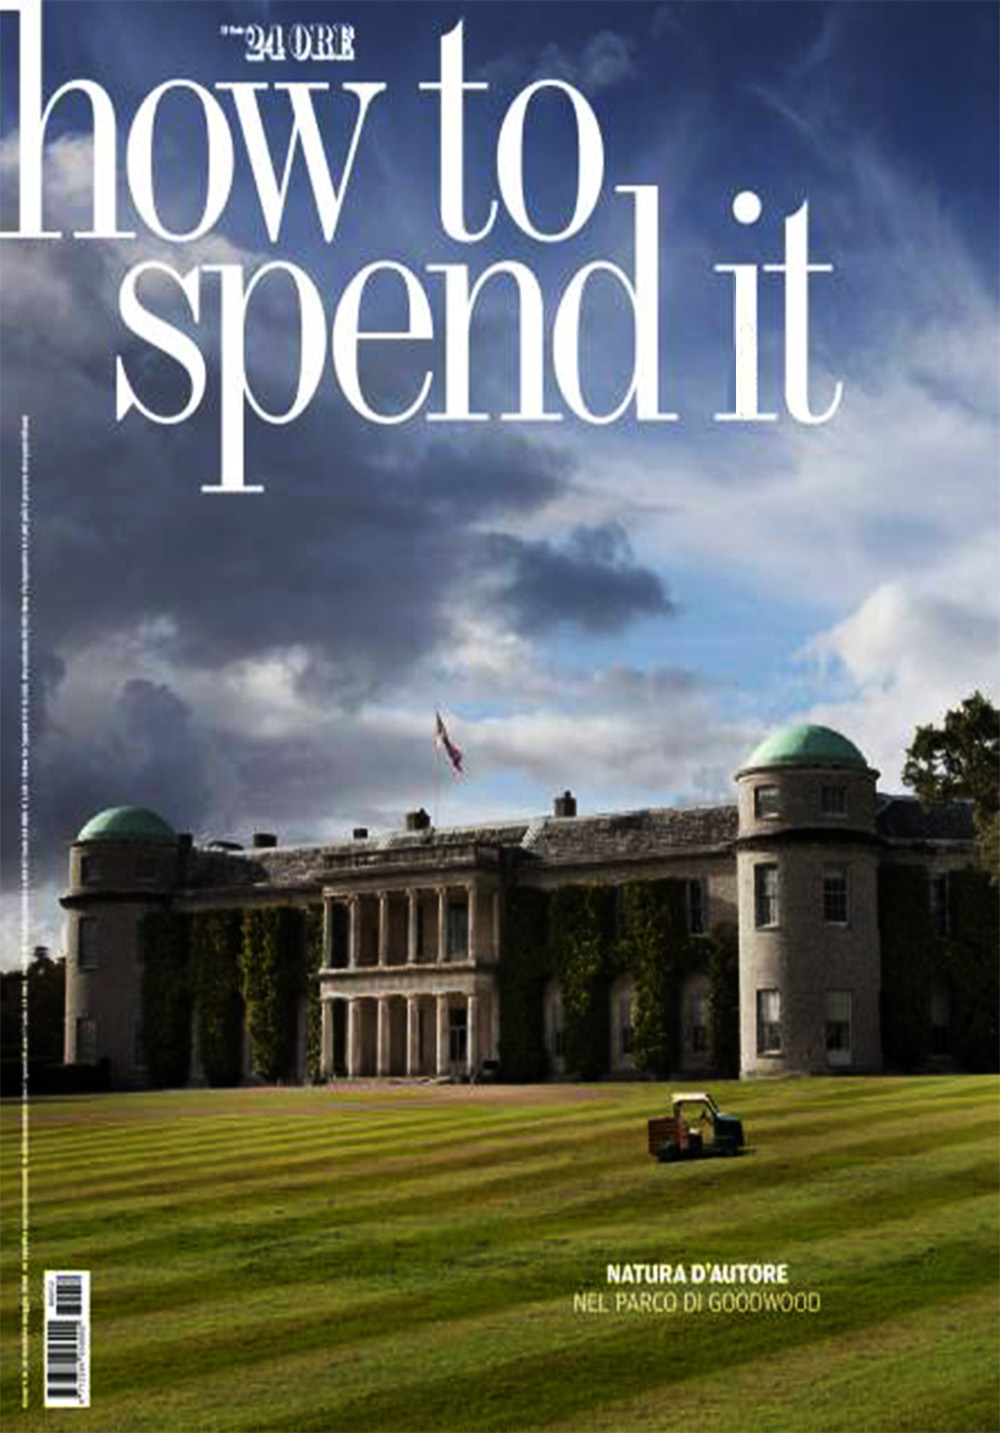 Sole 24 Ore - How to spend